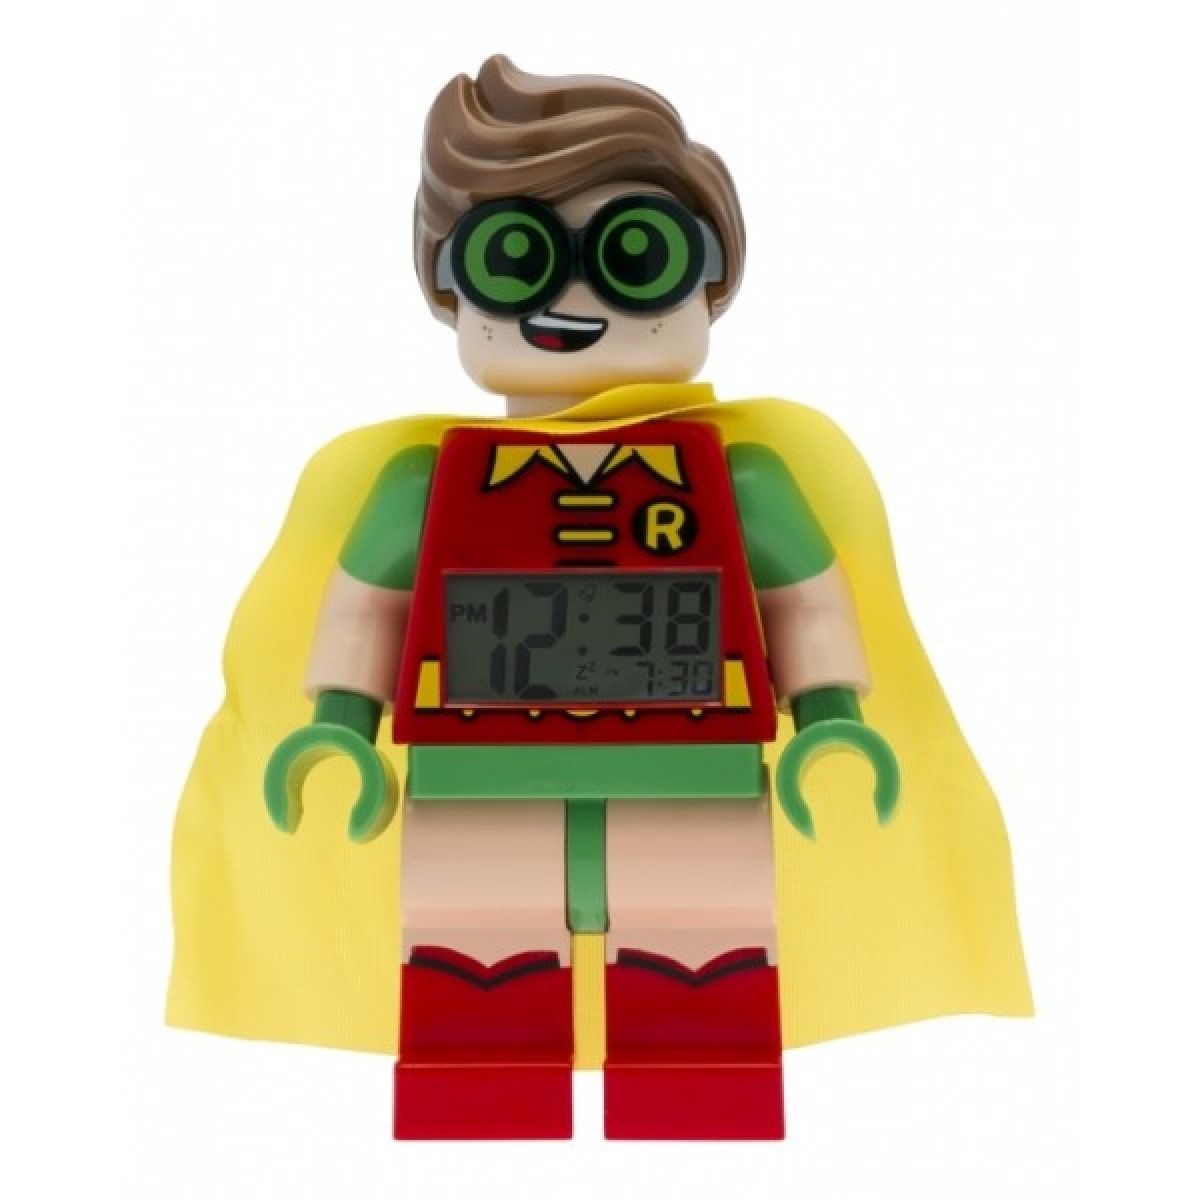 LEGO Batman Movie Robin hodiny s budíkem